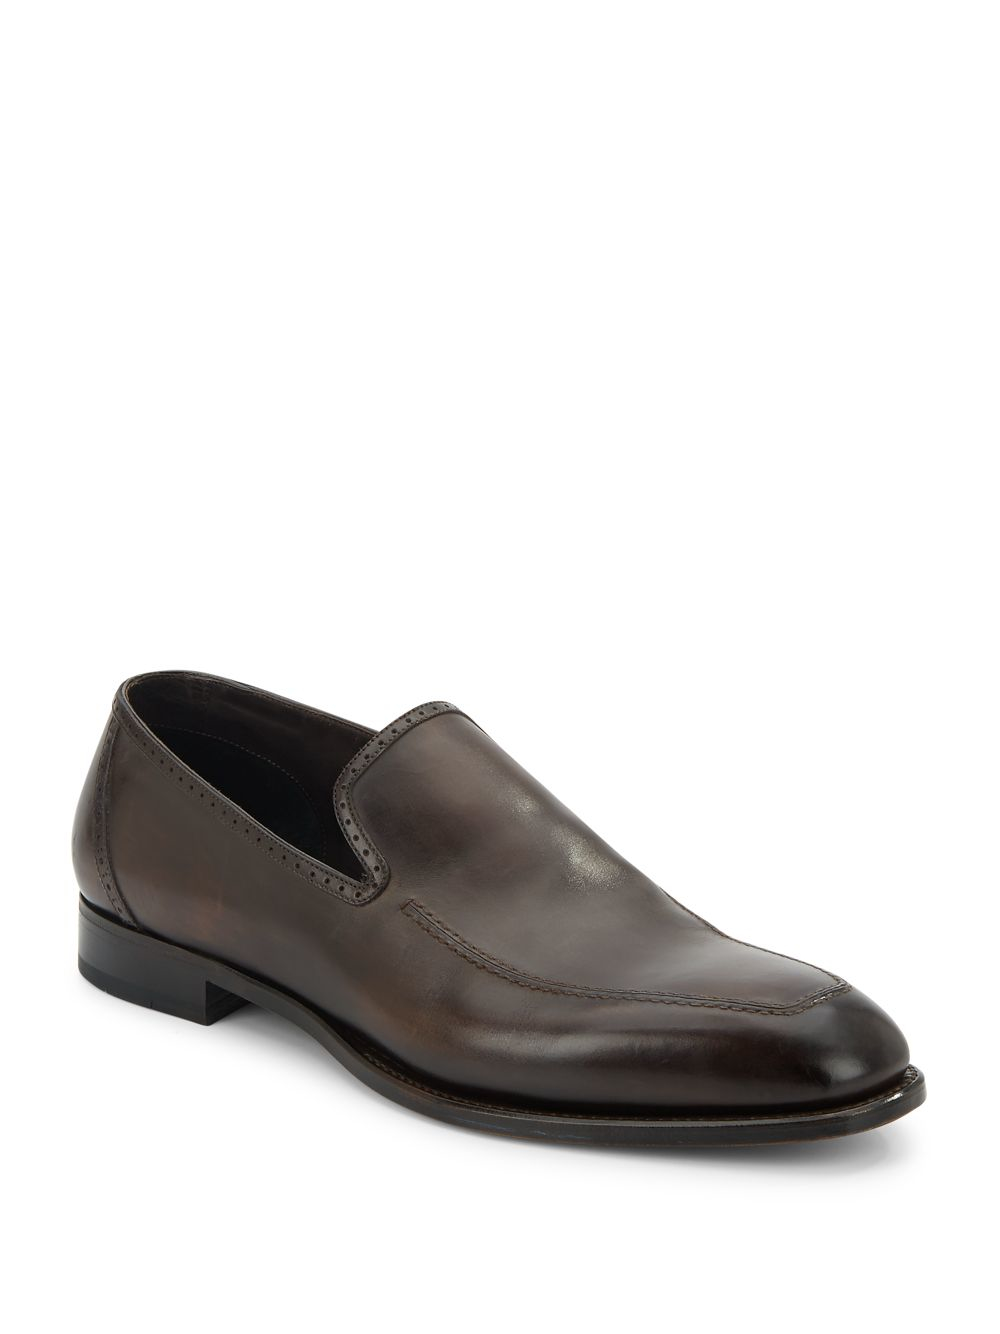 Brioni Leather Loafers In Brown For Men Lyst